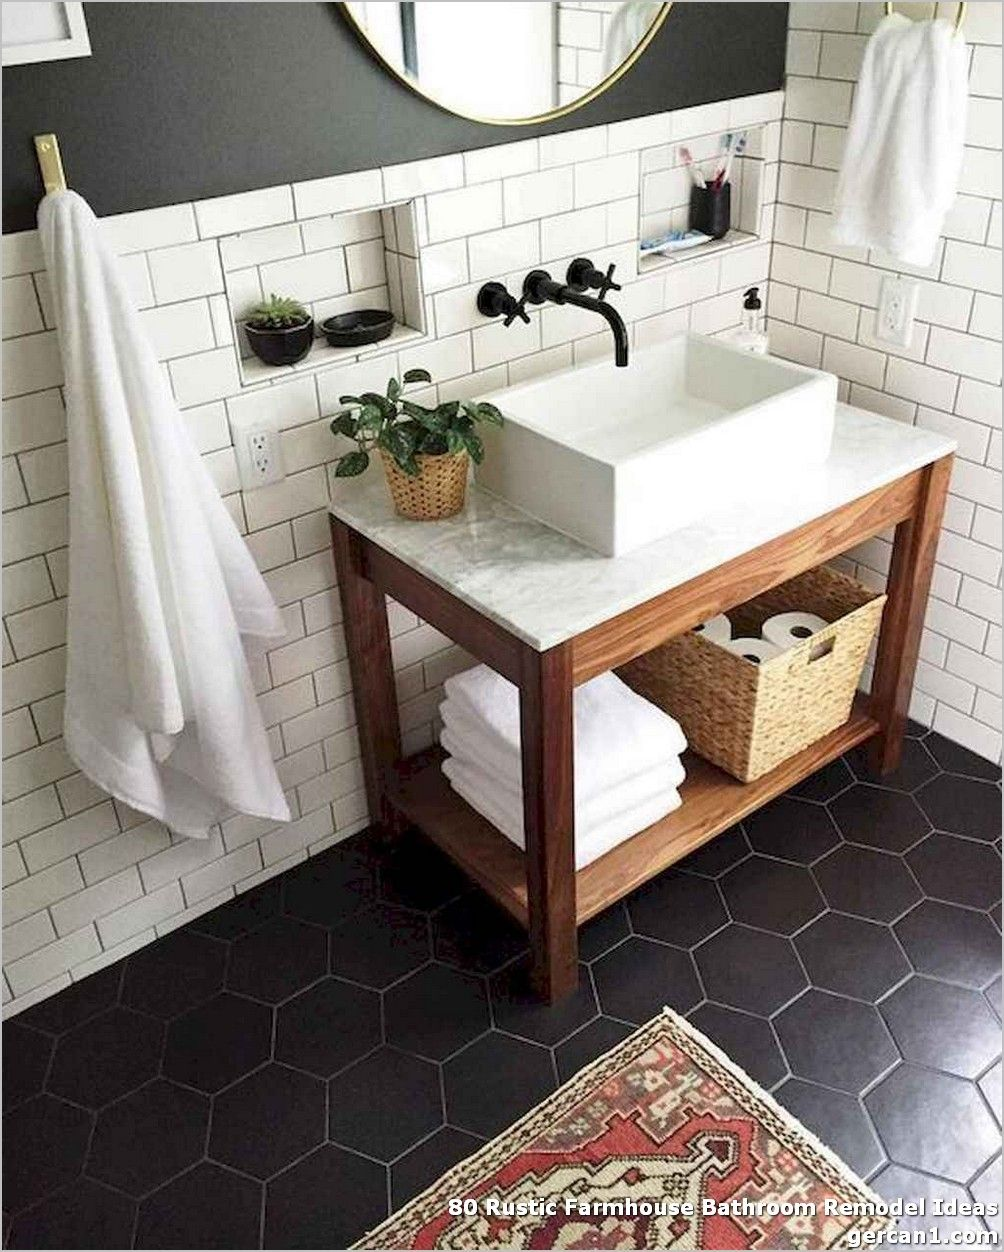 80 rustic farmhouse bathroom remodel ideas flip your on beautiful farmhouse bathroom shower decor ideas and remodel an extraordinary design id=53170